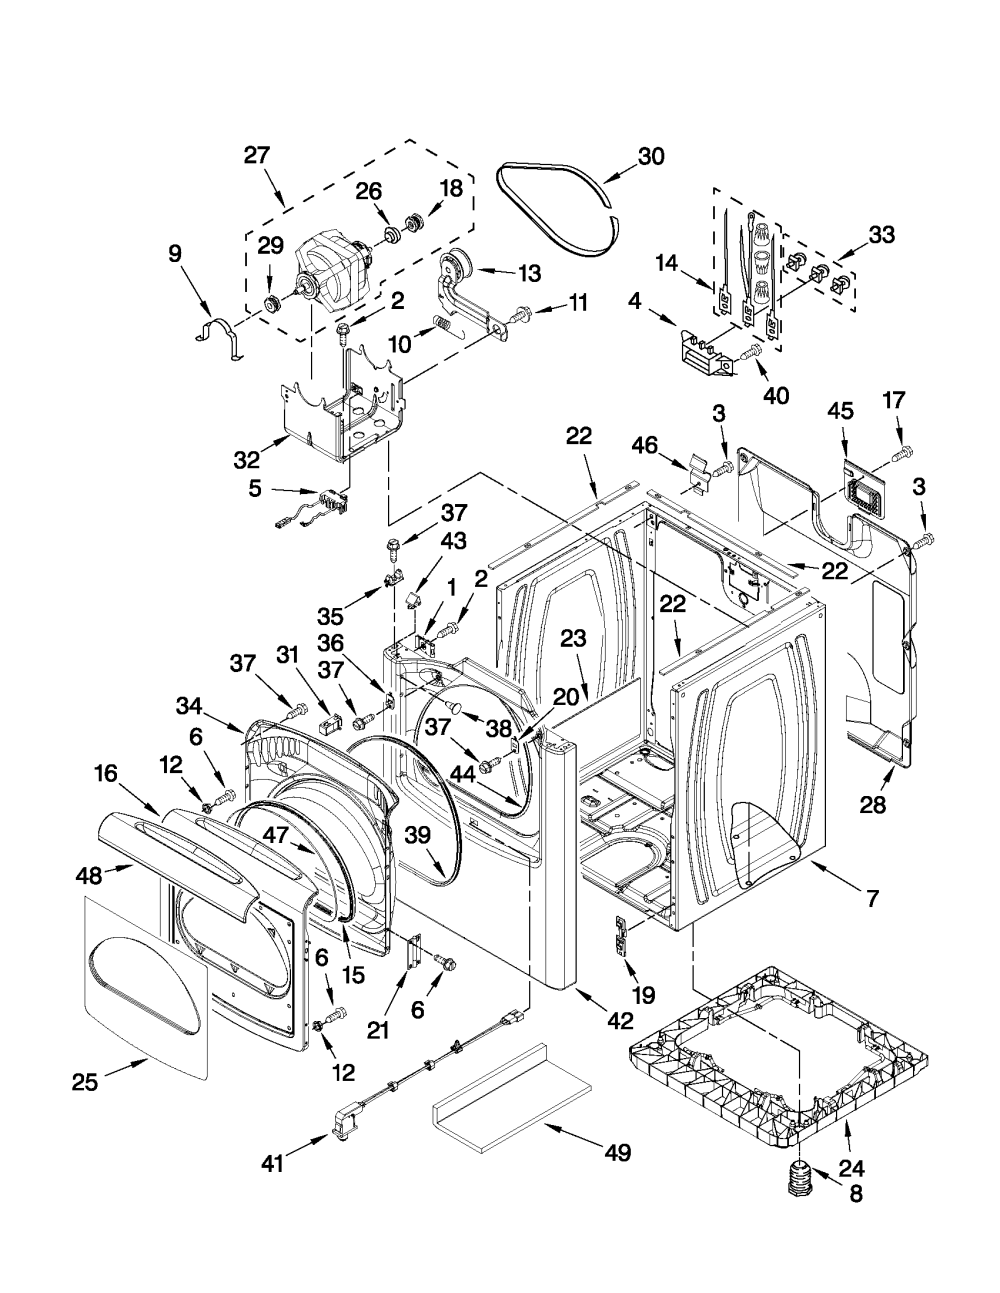 medium resolution of whirlpool model wed8800yc1 residential dryer genuine parts rh searspartsdirect com saturn sl2 cooling system diagram 1997